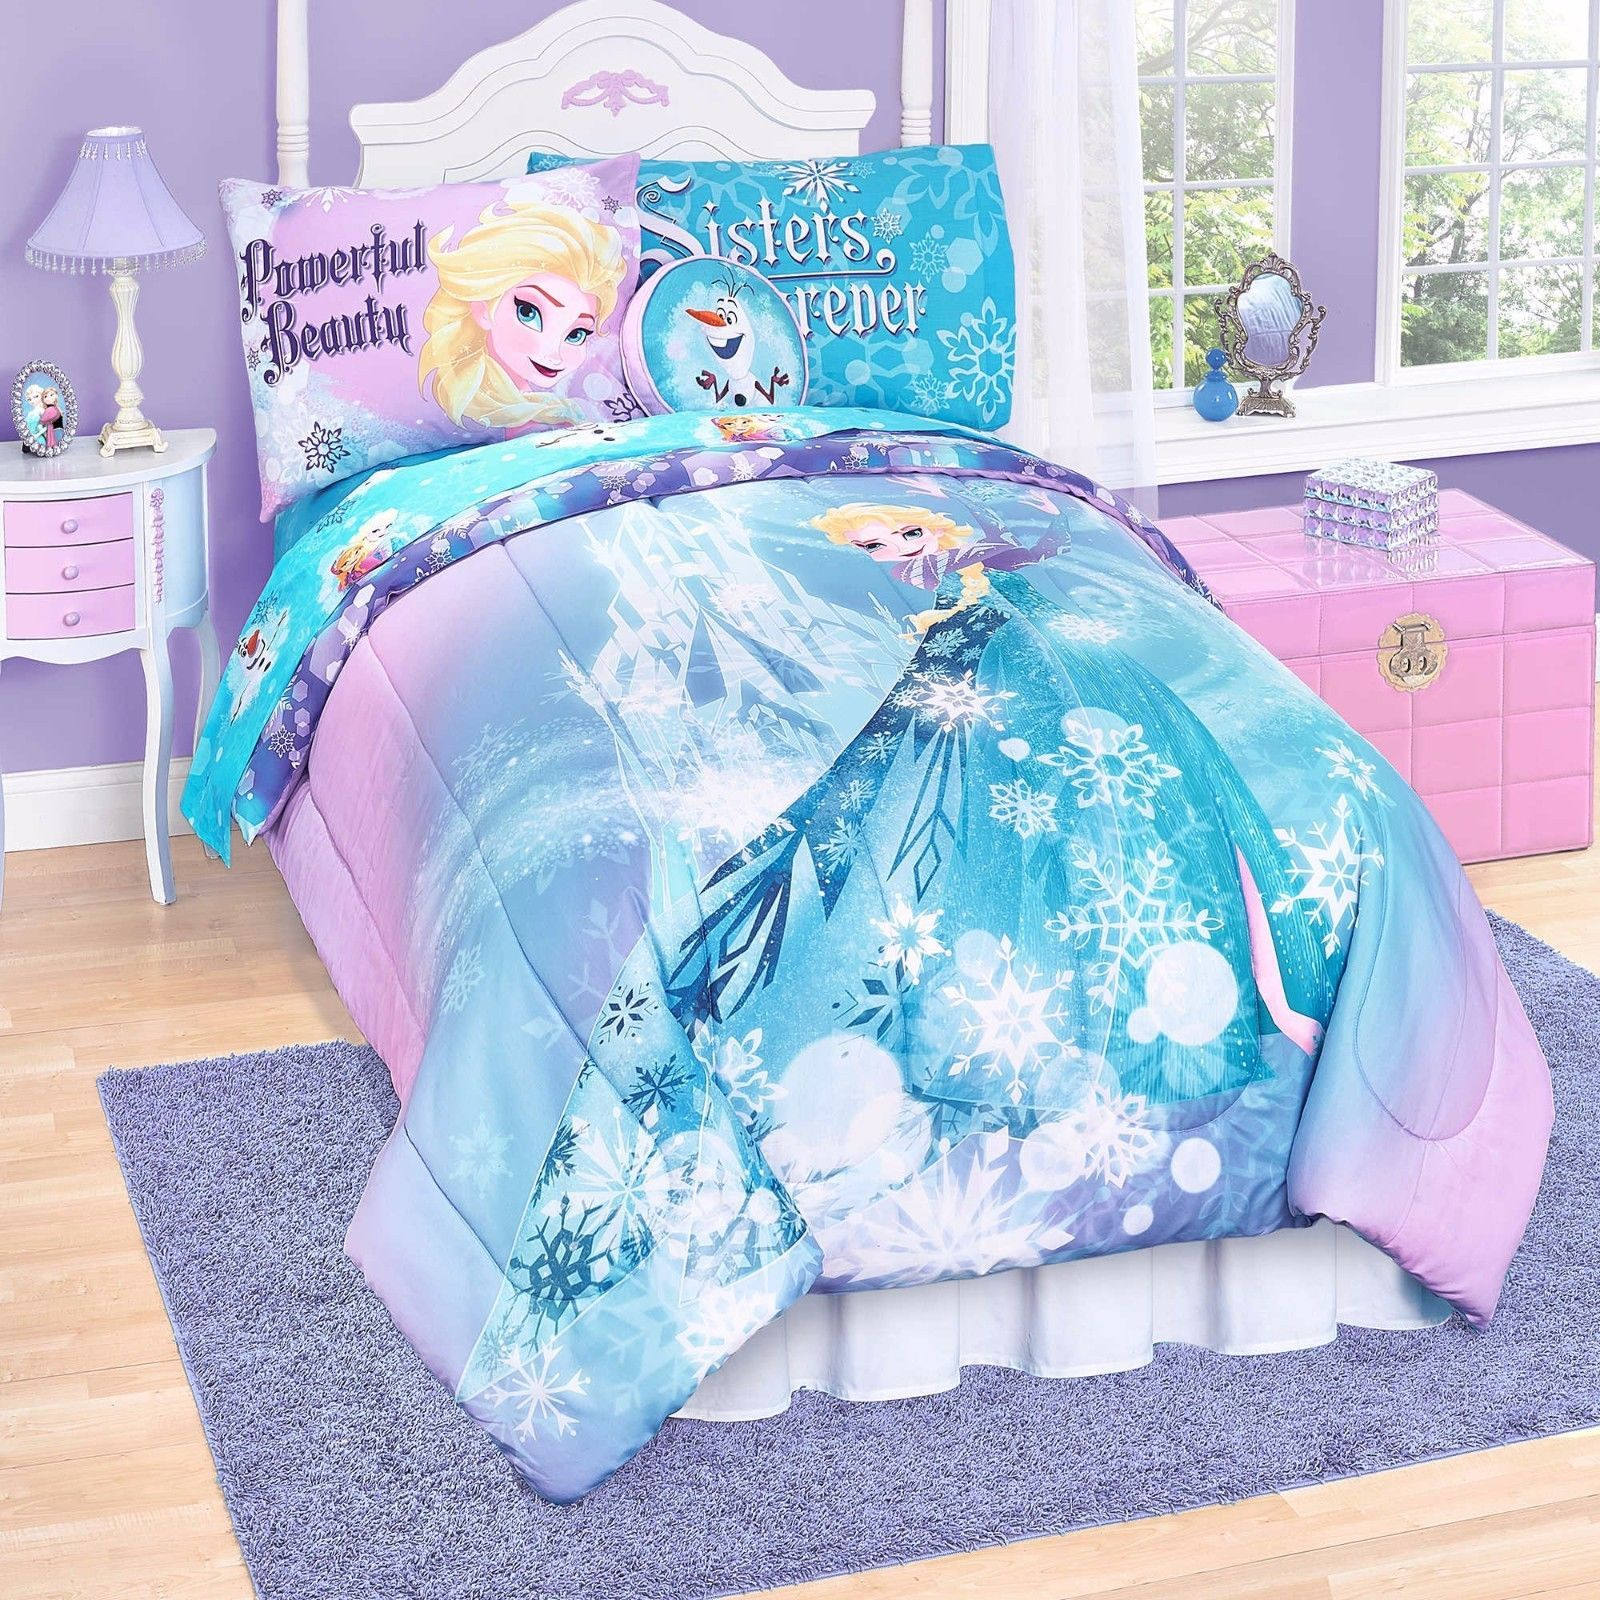 Attrayant Disney Frozen Elsa Anna 6 Piece Twin Bed Set Reversible Purple Blue Pink  Sheets | EBay